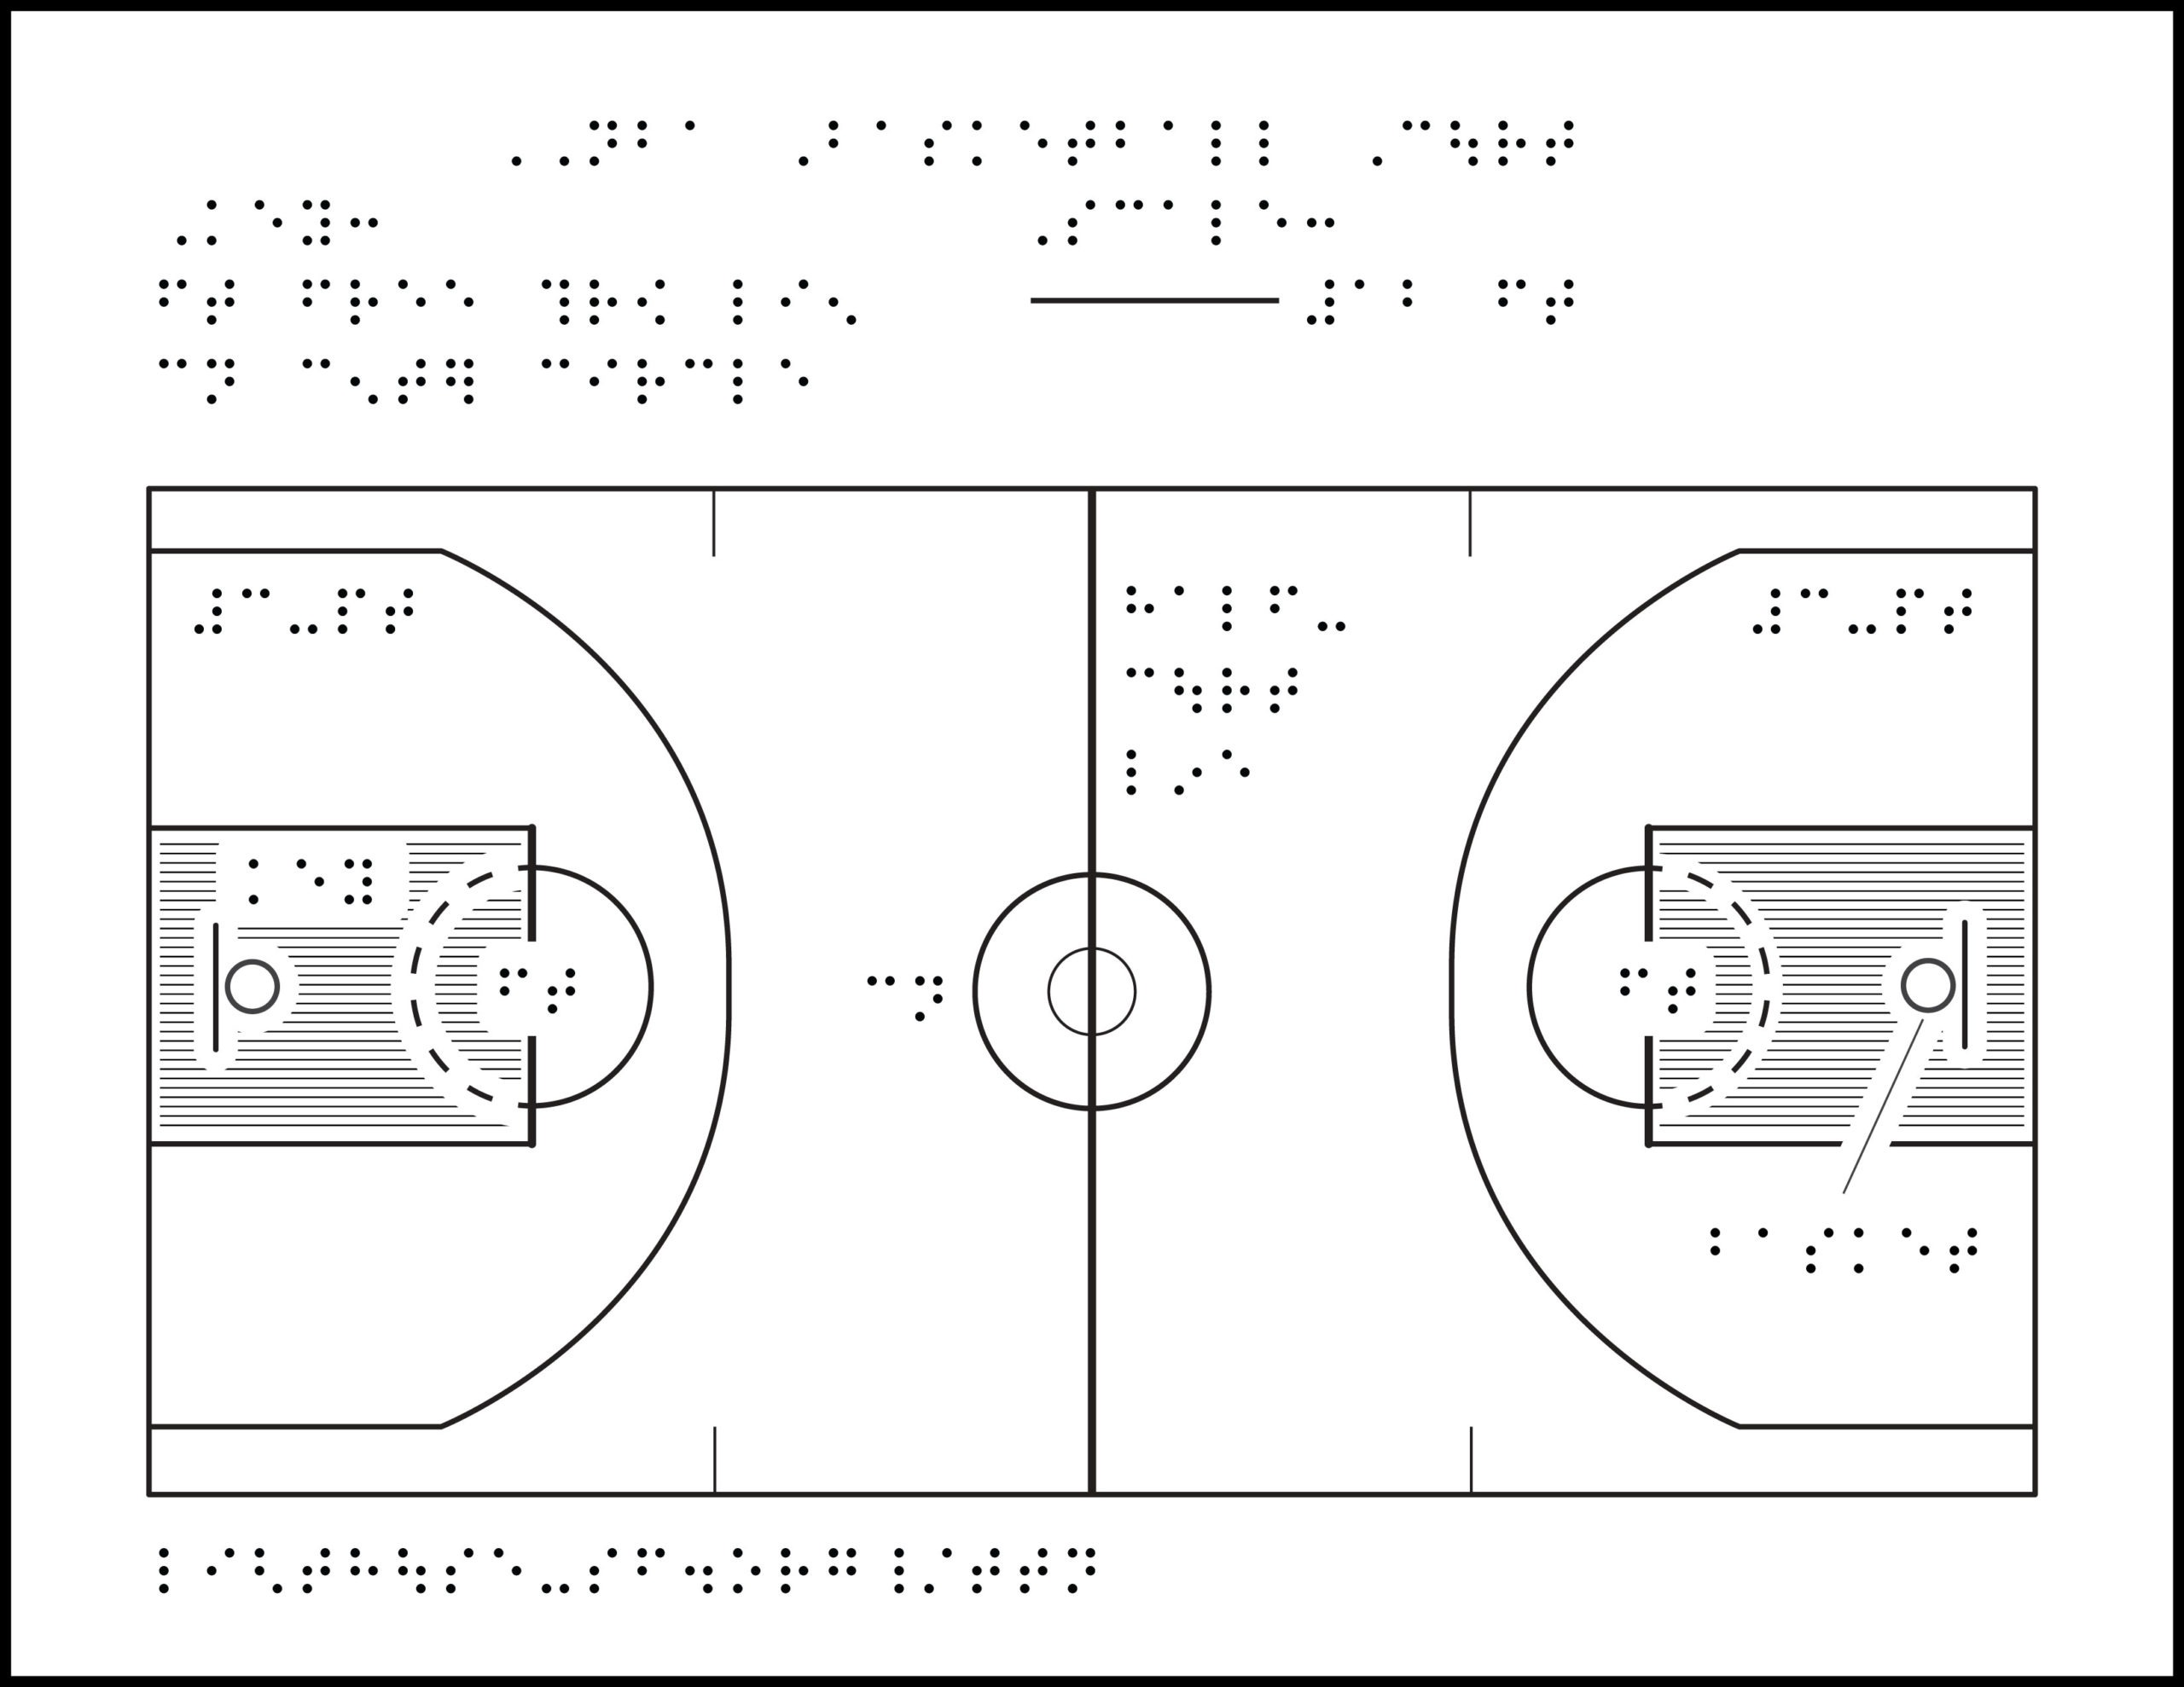 Illustration of a basketball court with braille labels